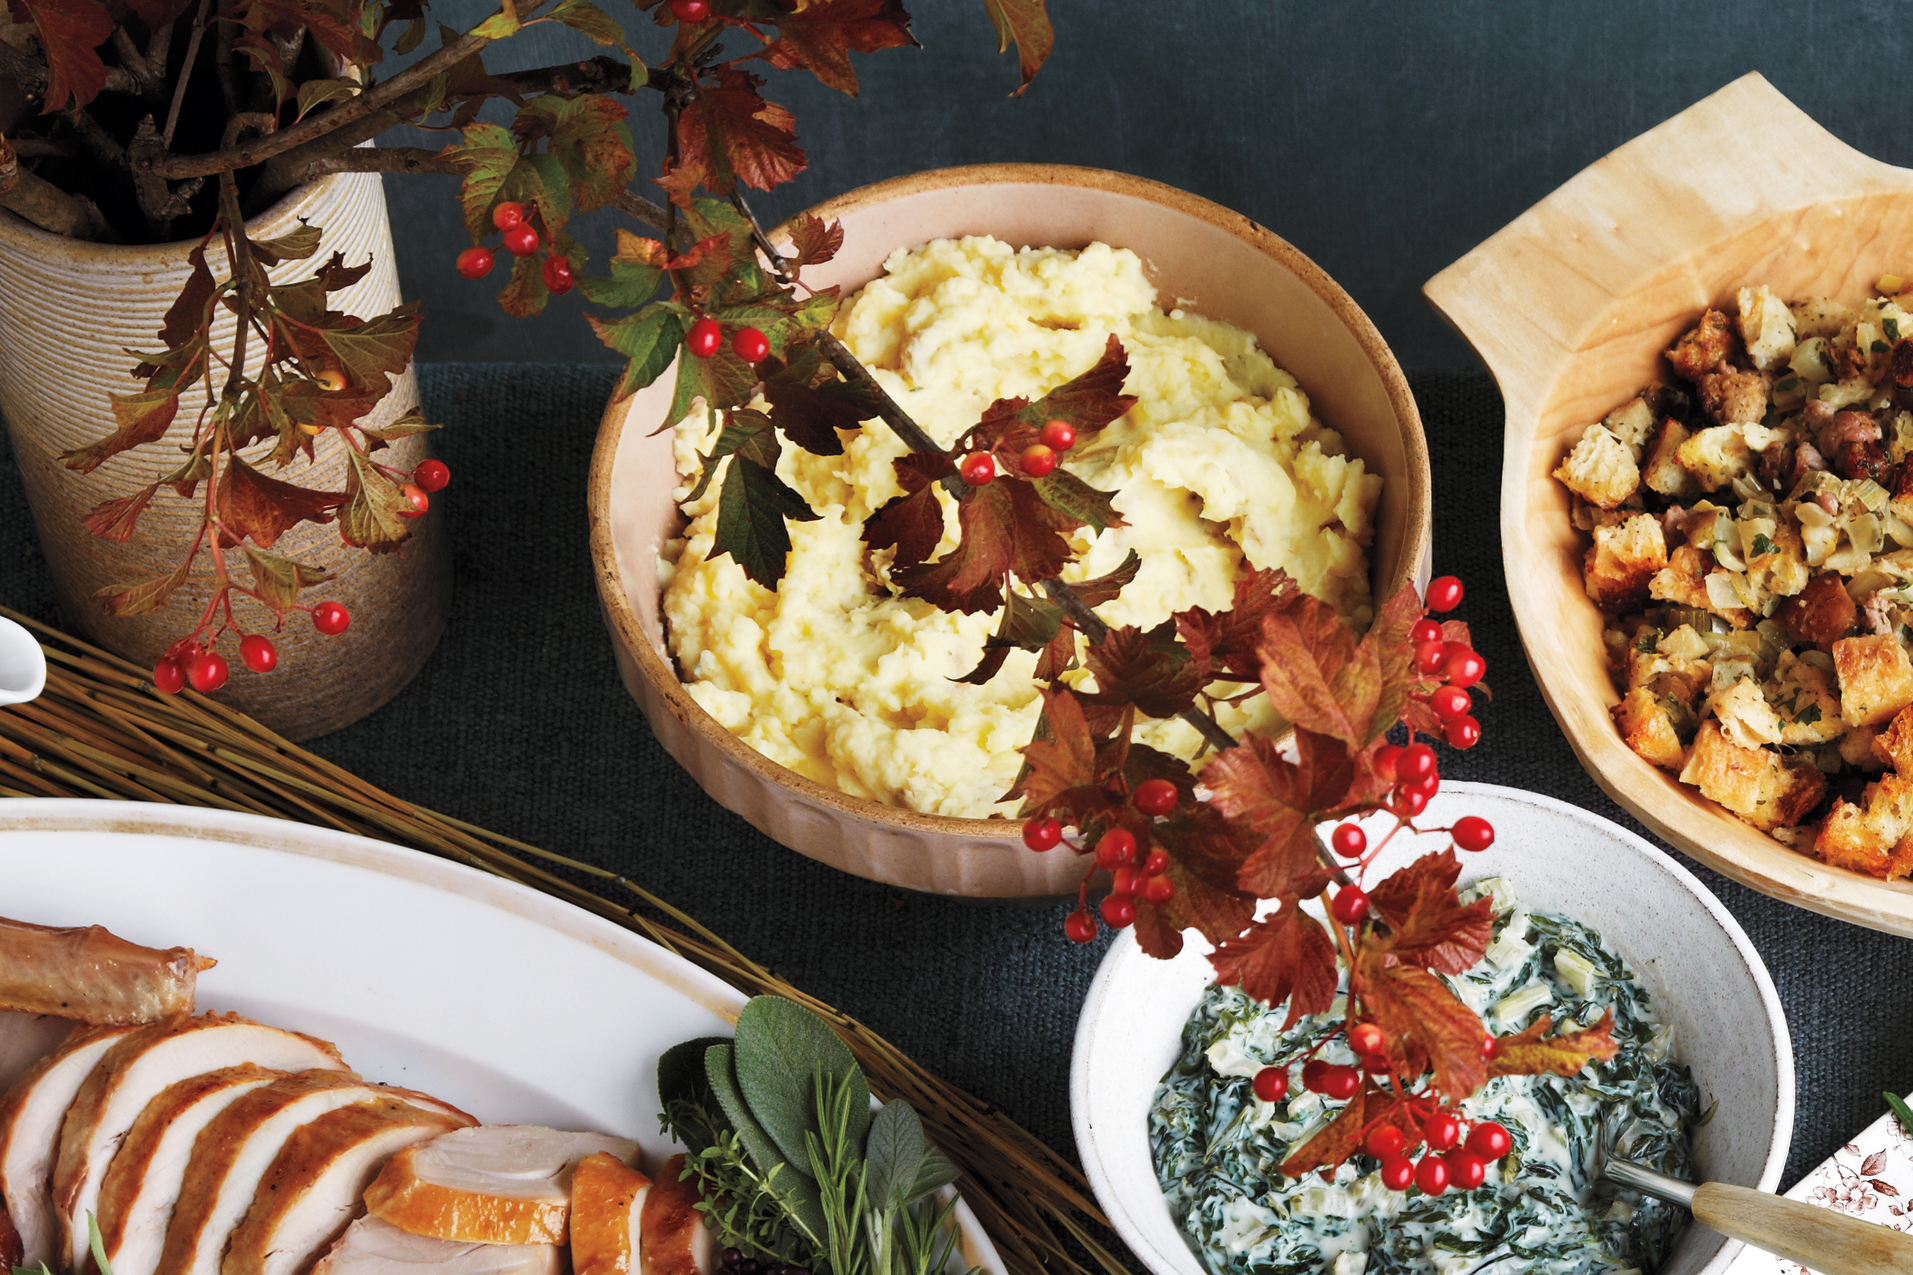 Olive-Oil Mashed Potatoes with Garlic and Sage